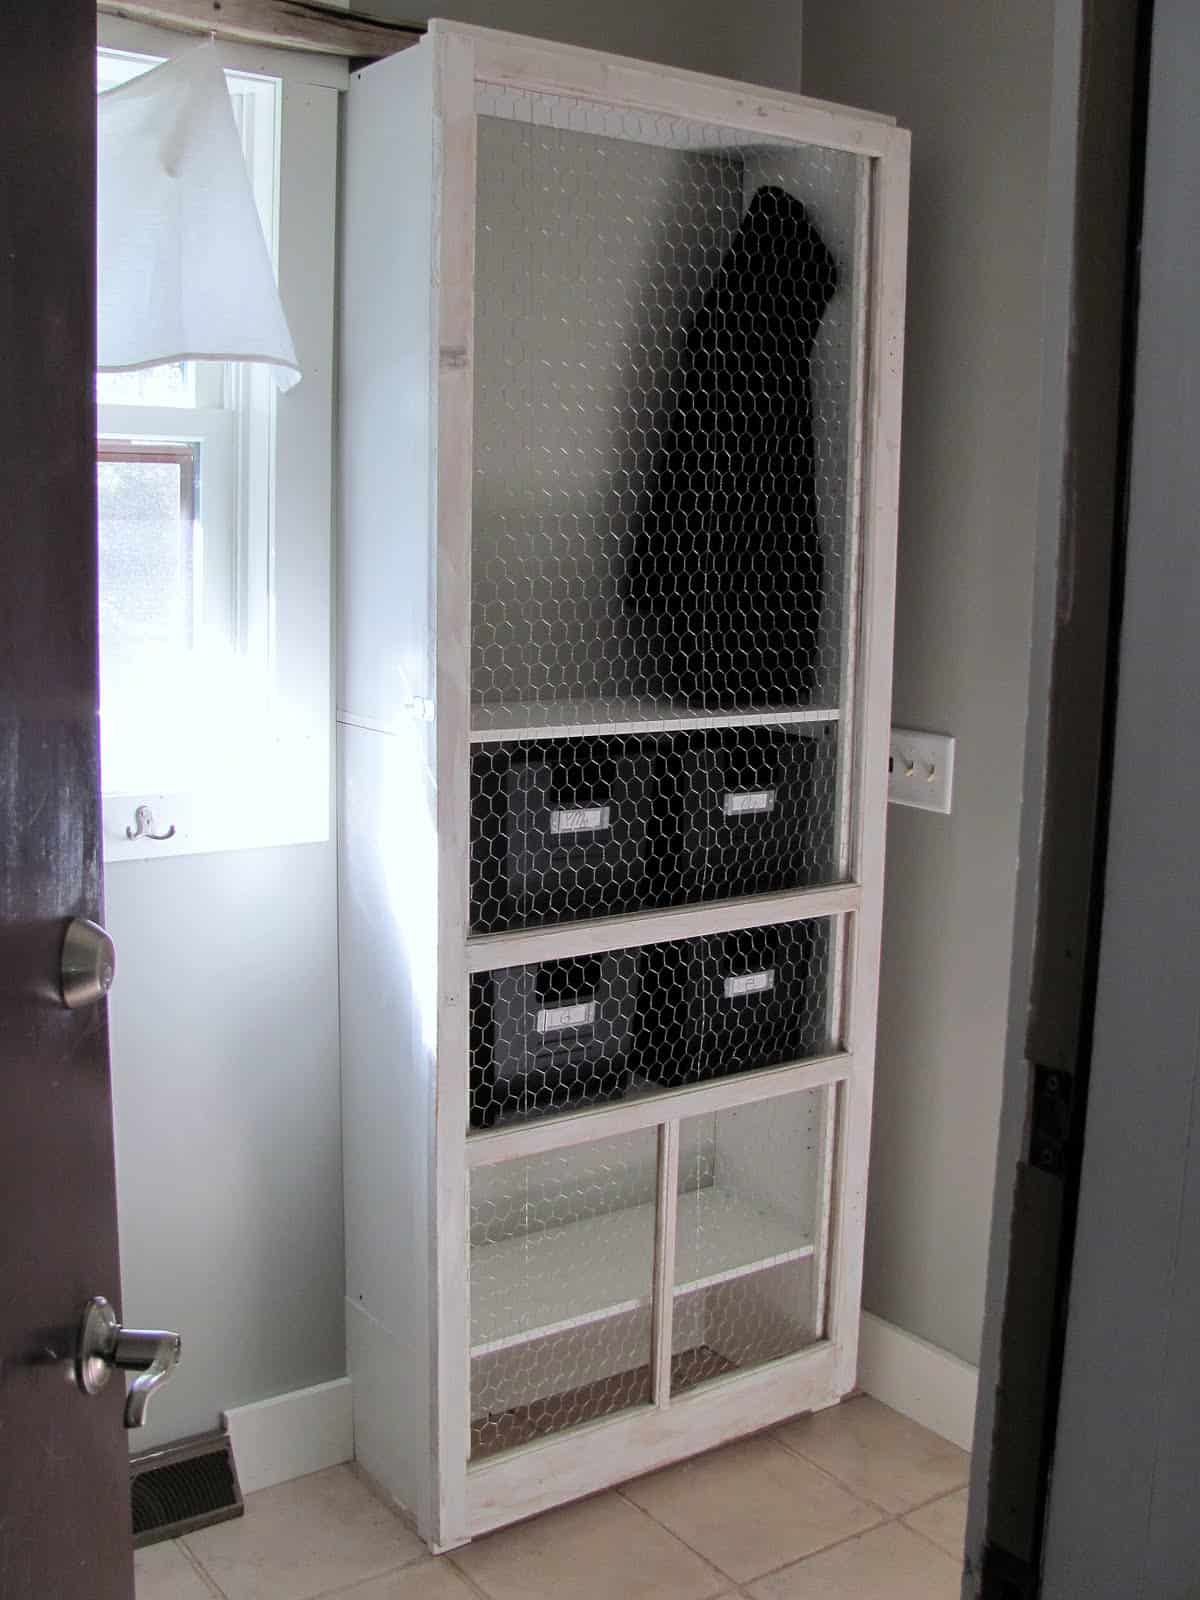 Screen wire laundry room cabinet